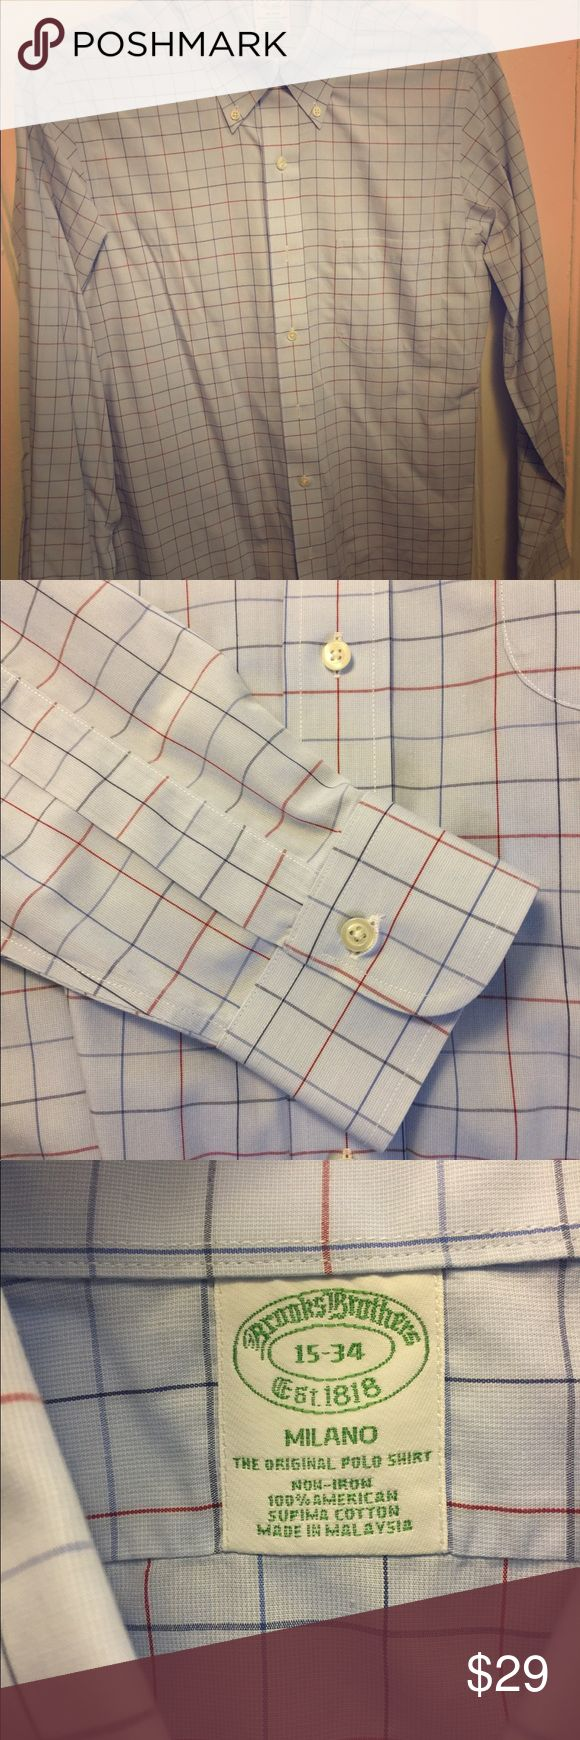 Brooks Brothers Milano Fit Non-Iron Dress Shirt Brooks Brothers Milano (extra slim) Fit Non-Iron Dress Shirt 15 - 34, 100% supima cotton, Great condition! Brooks Brothers Shirts Dress Shirts